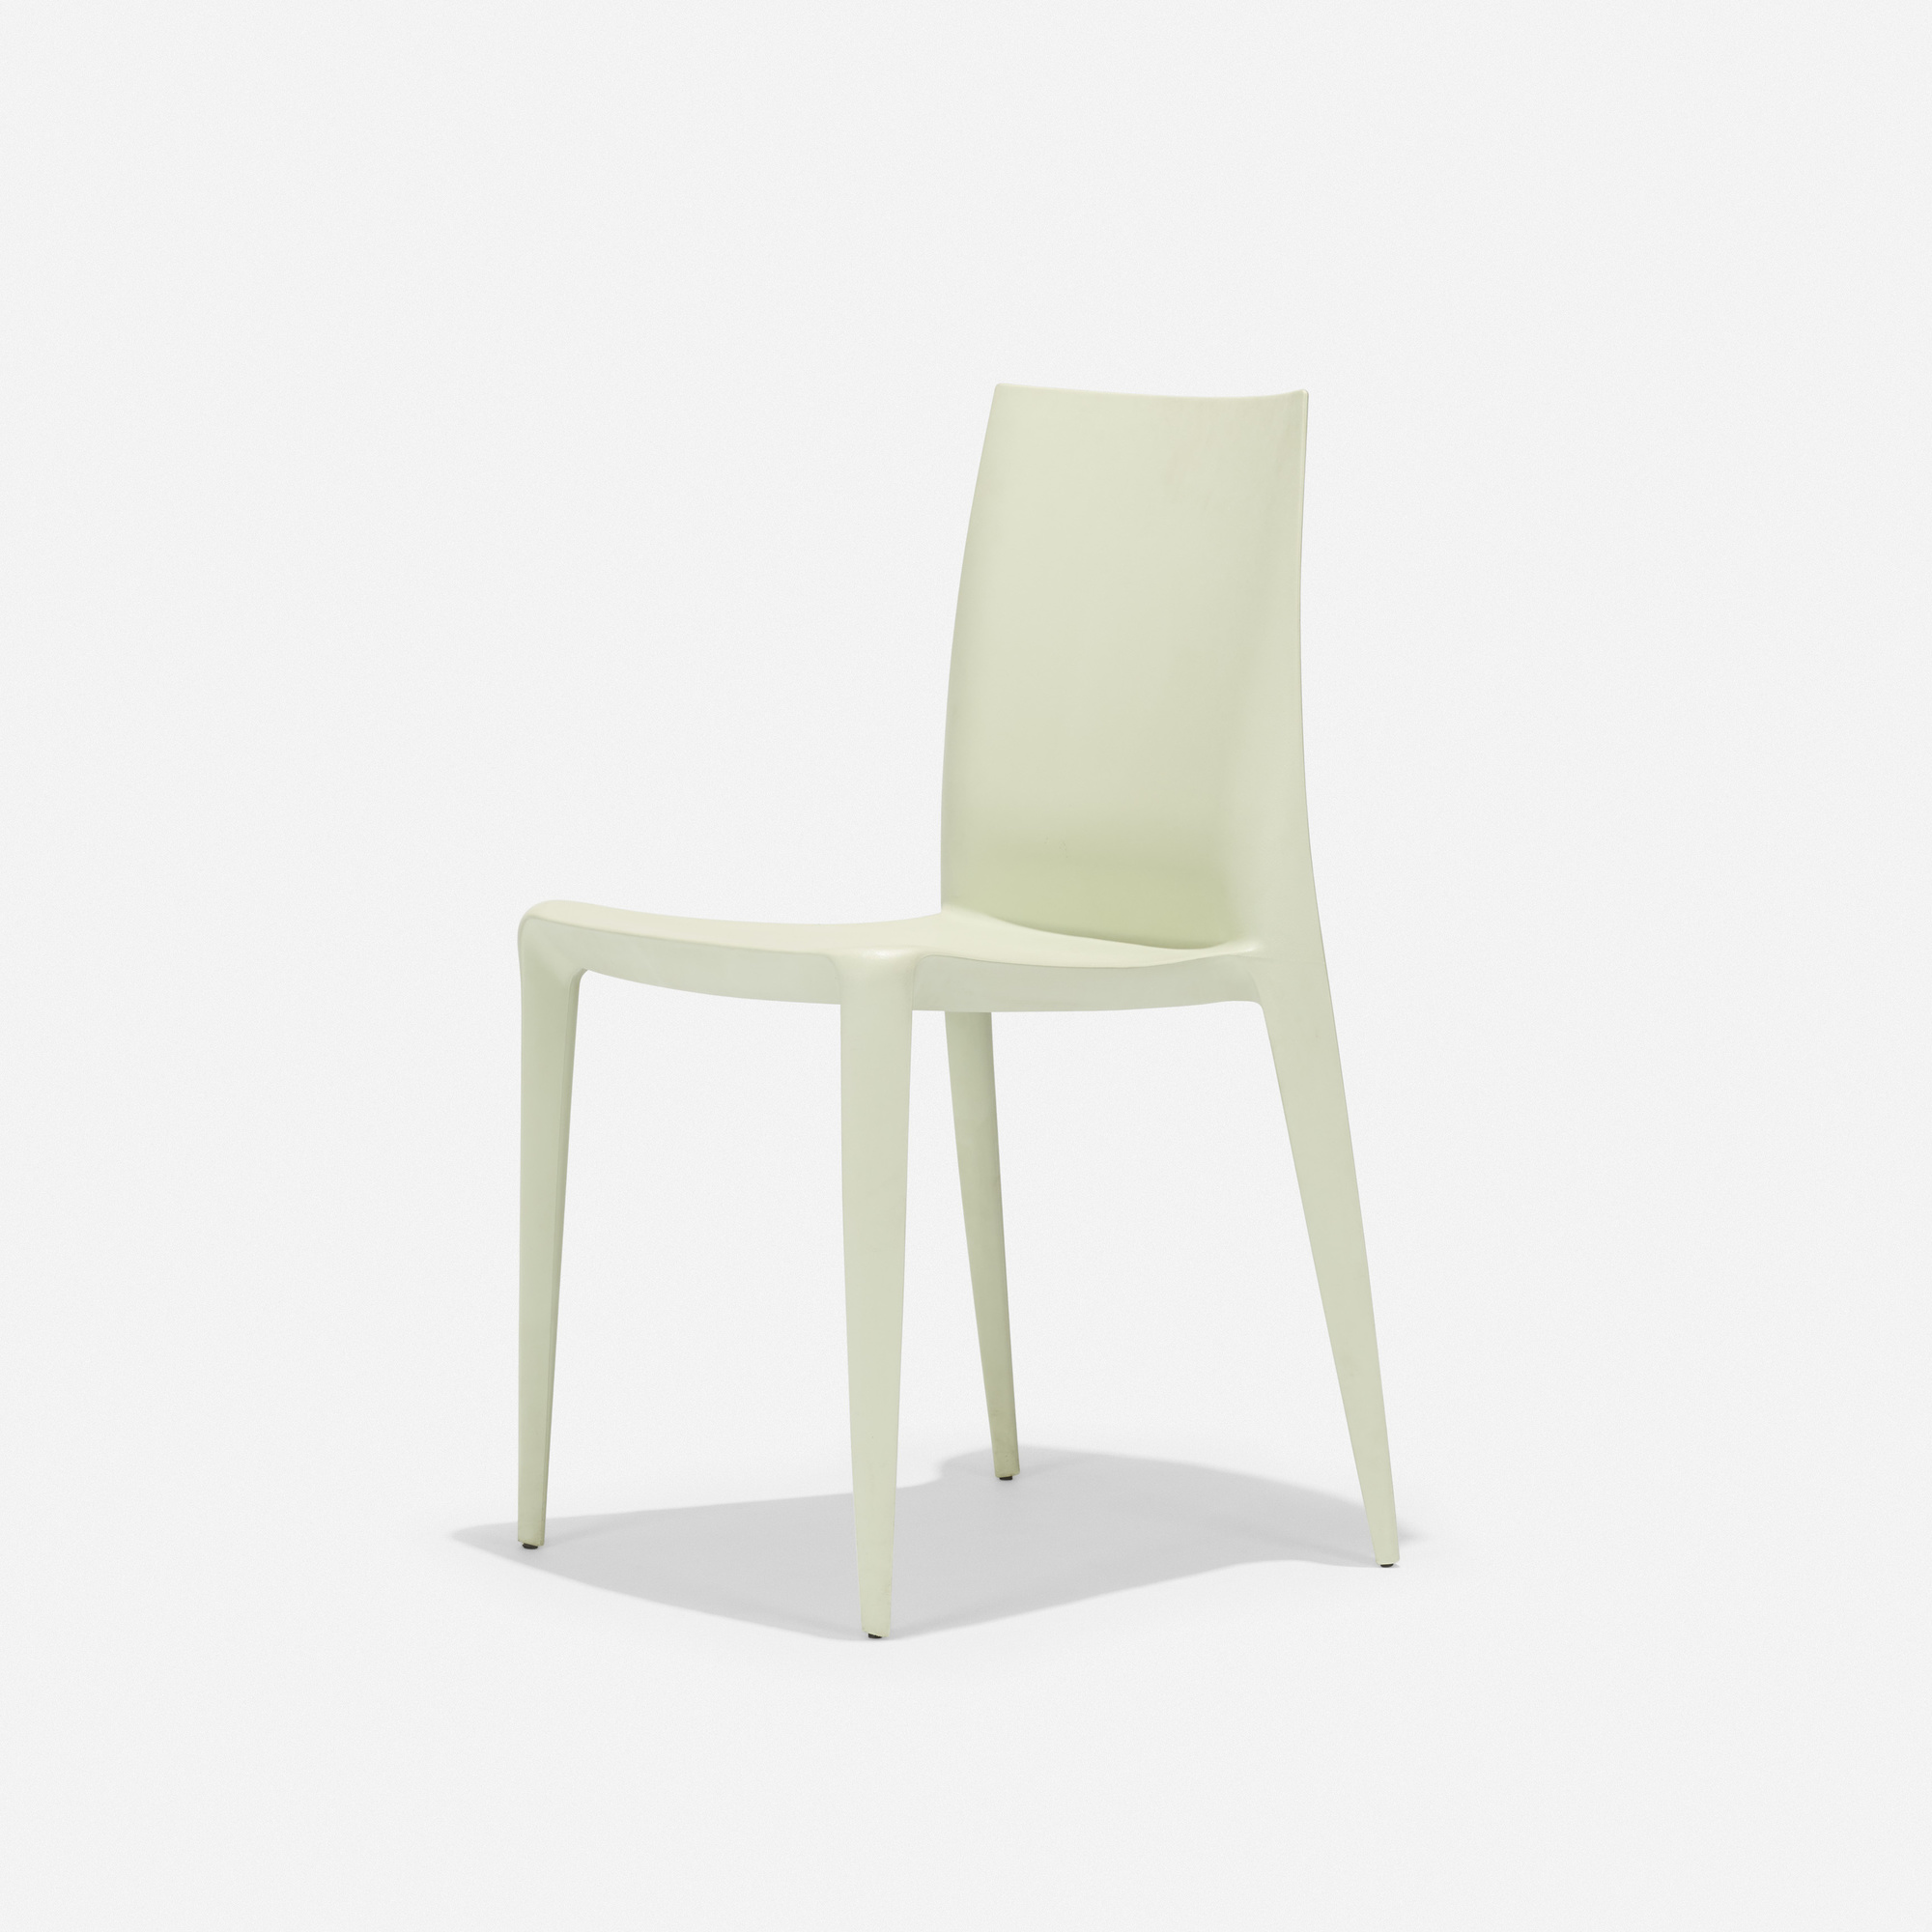 349: Mario Bellini / The Bellini chair (1 of 3)